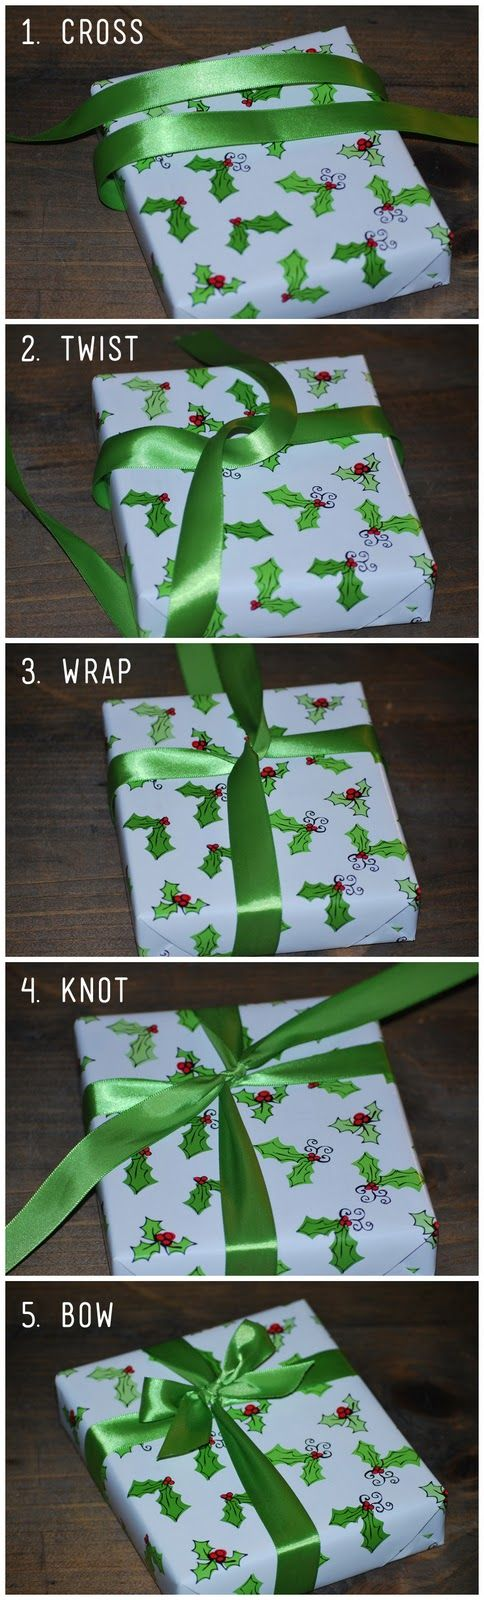 FINALLY! I have never known how to do this & yet still buy ribbon- so I have GOBS of it. Time to use it!